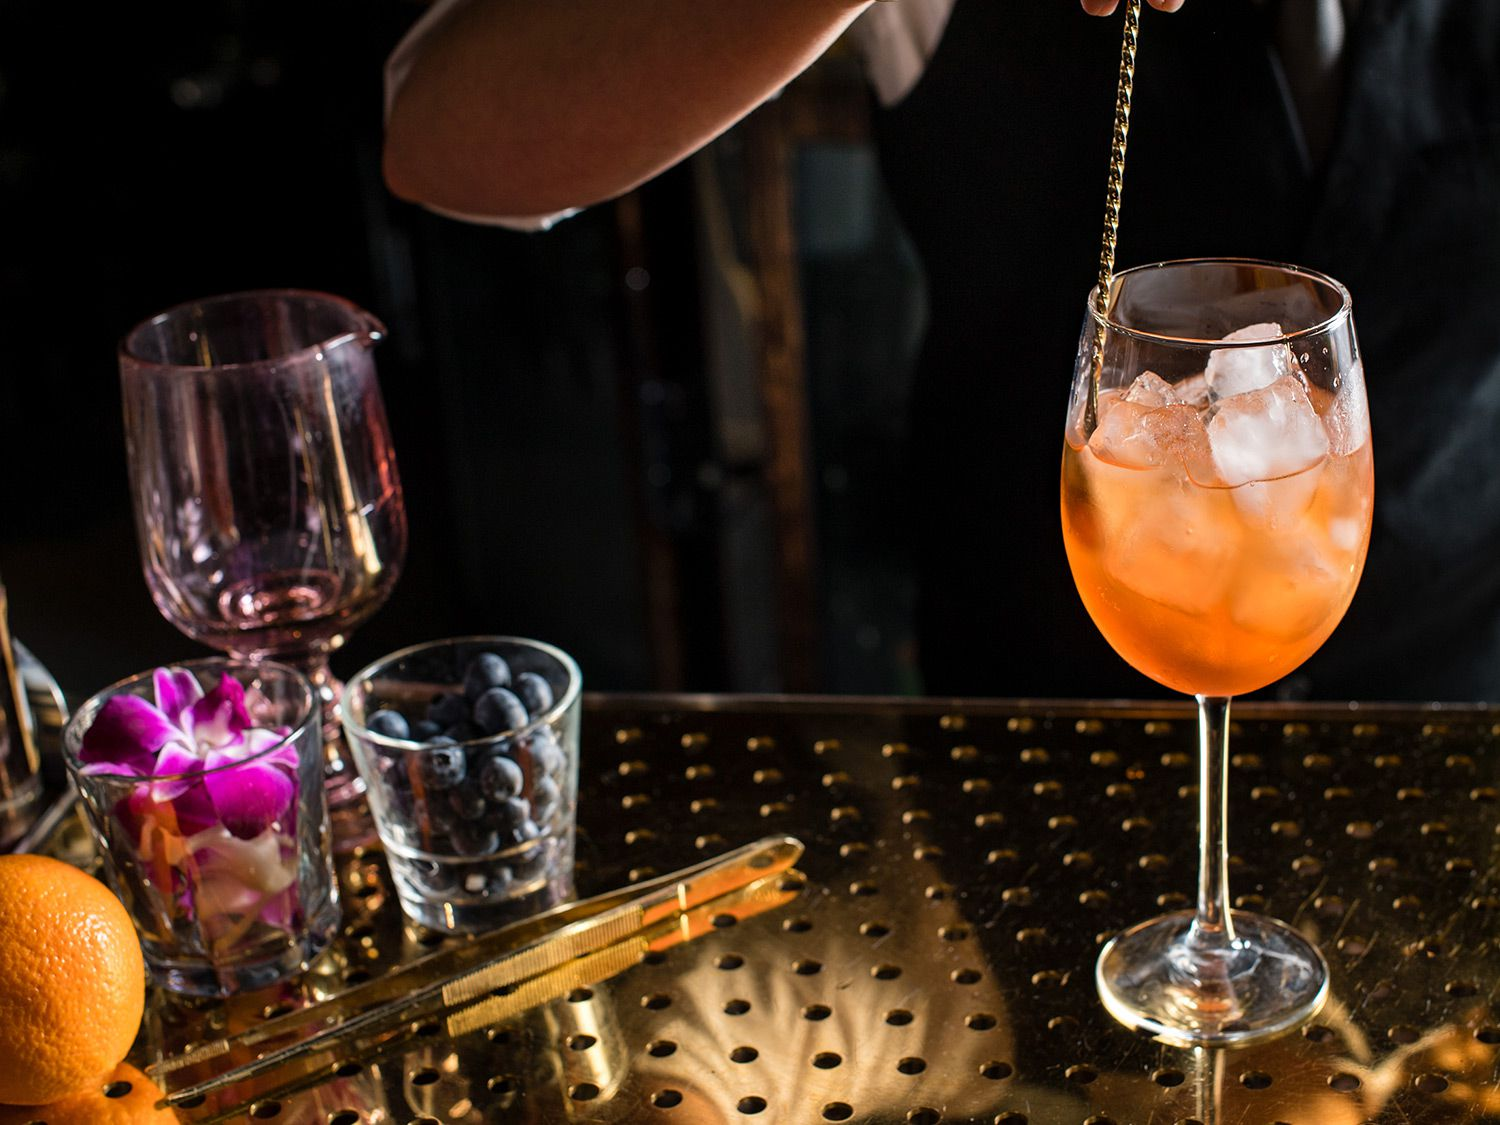 Go beyond the ubiquitous Aperol spritz, and try one of these refreshing riffs on the classic fizzy formula.